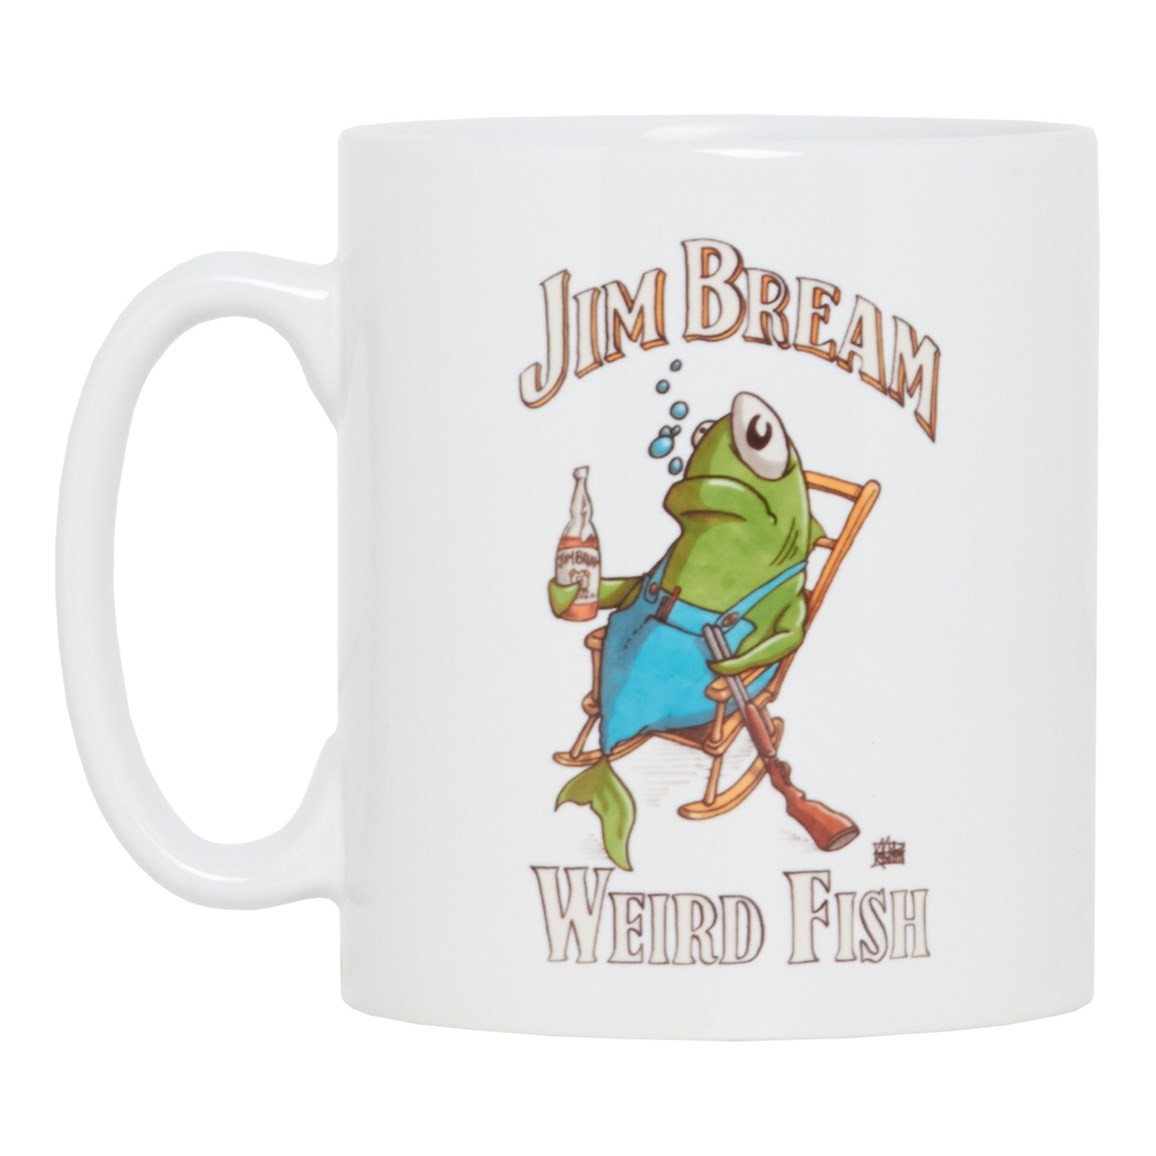 Image of Jim Bream Graphic Print Mug White